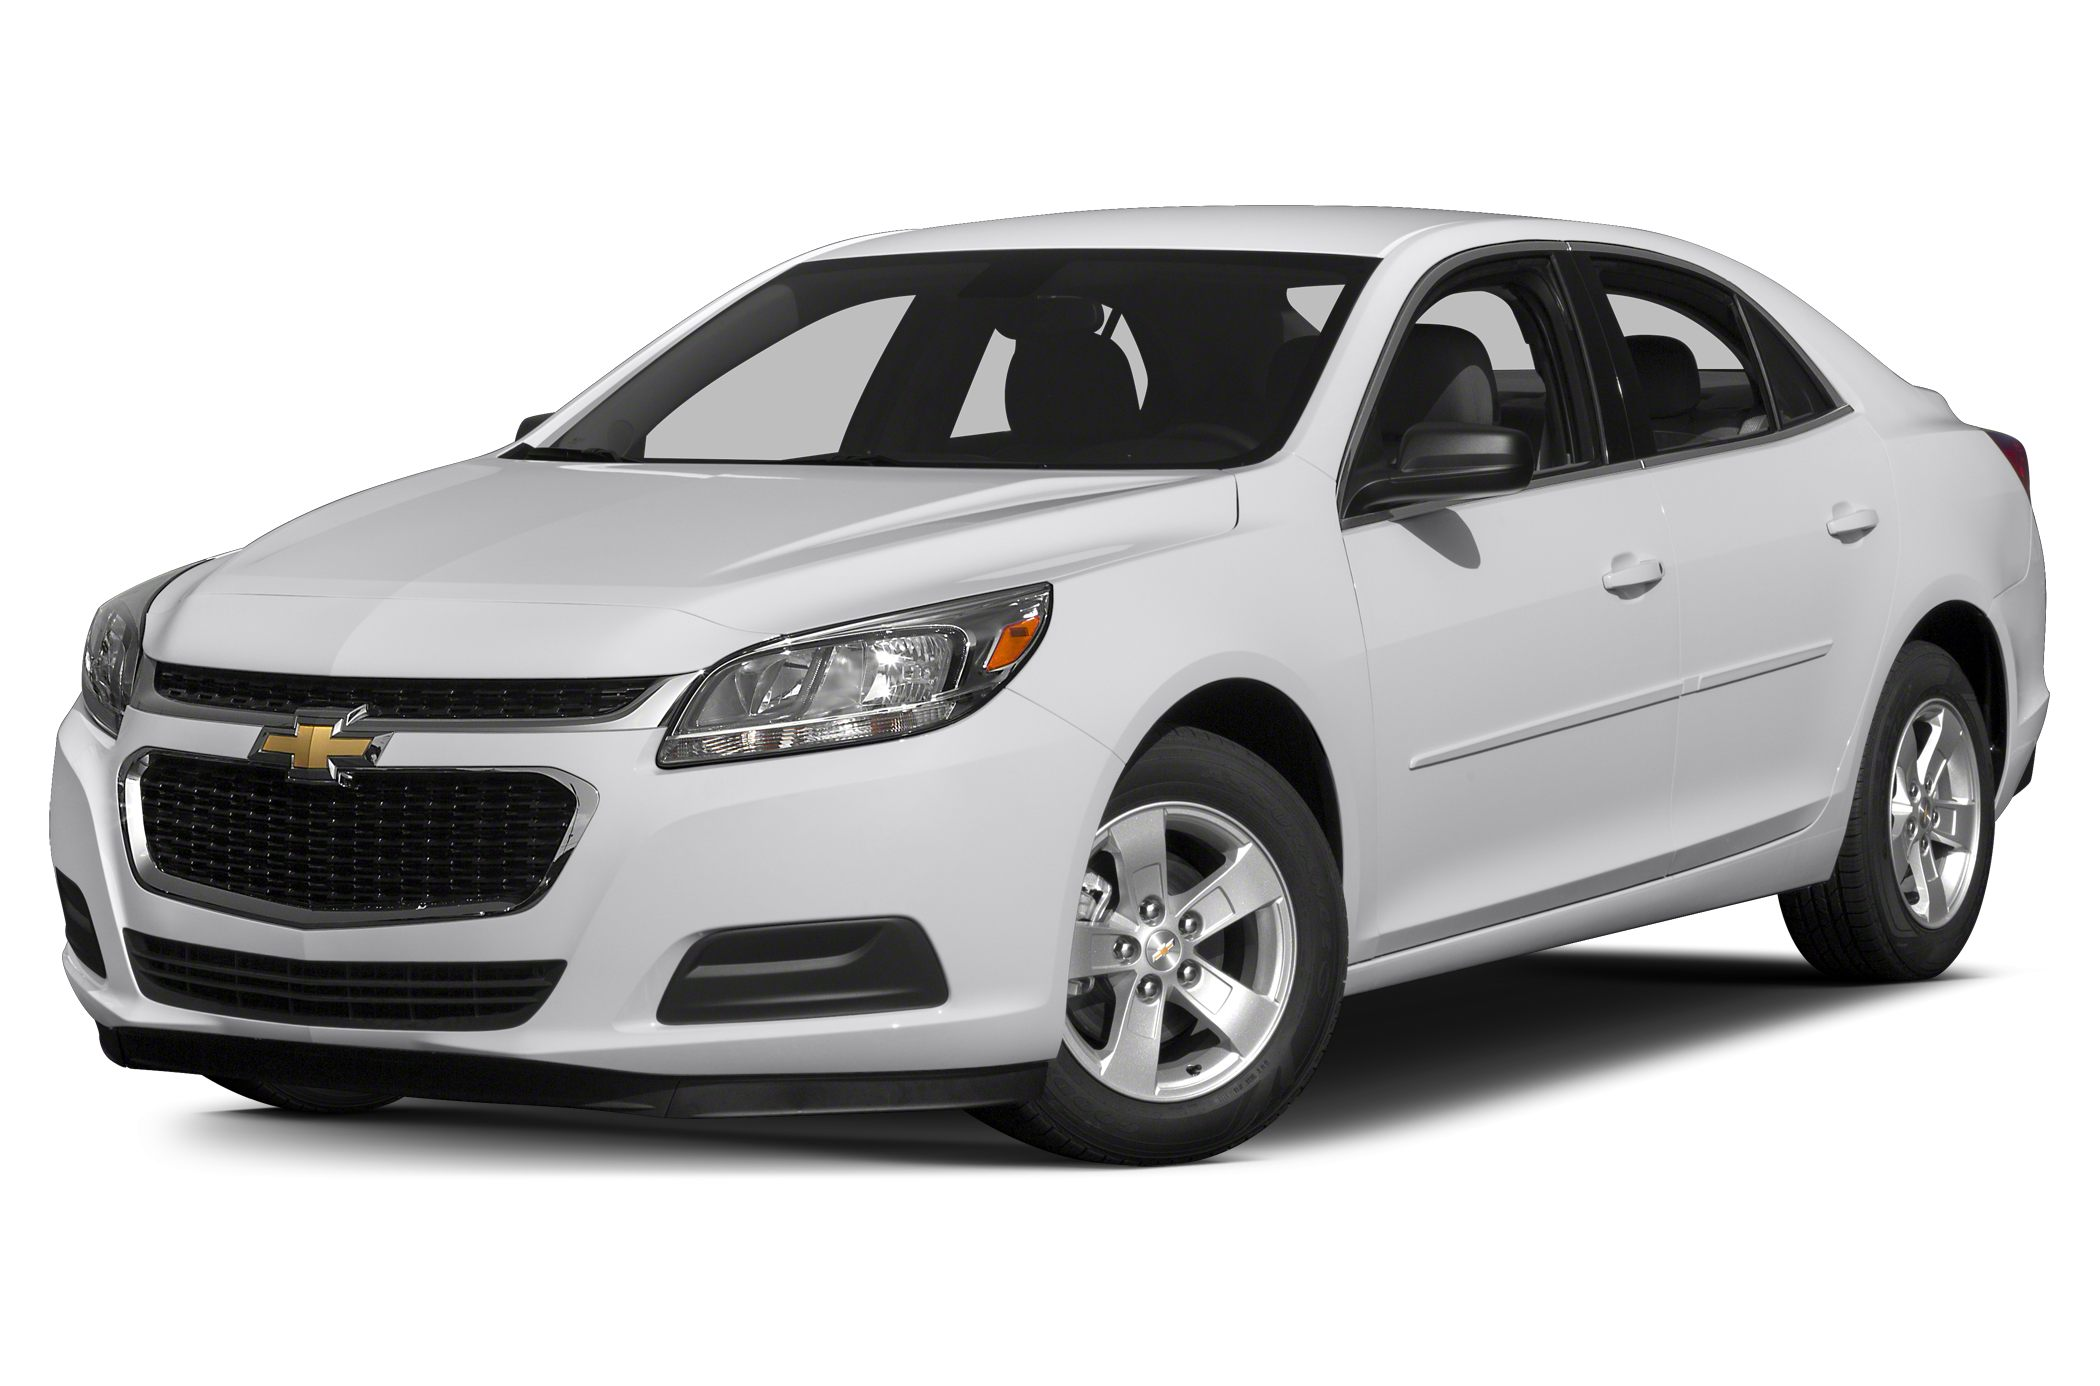 2015 Chevrolet Malibu 1LT Sedan for sale in Buford for $24,575 with 0 miles